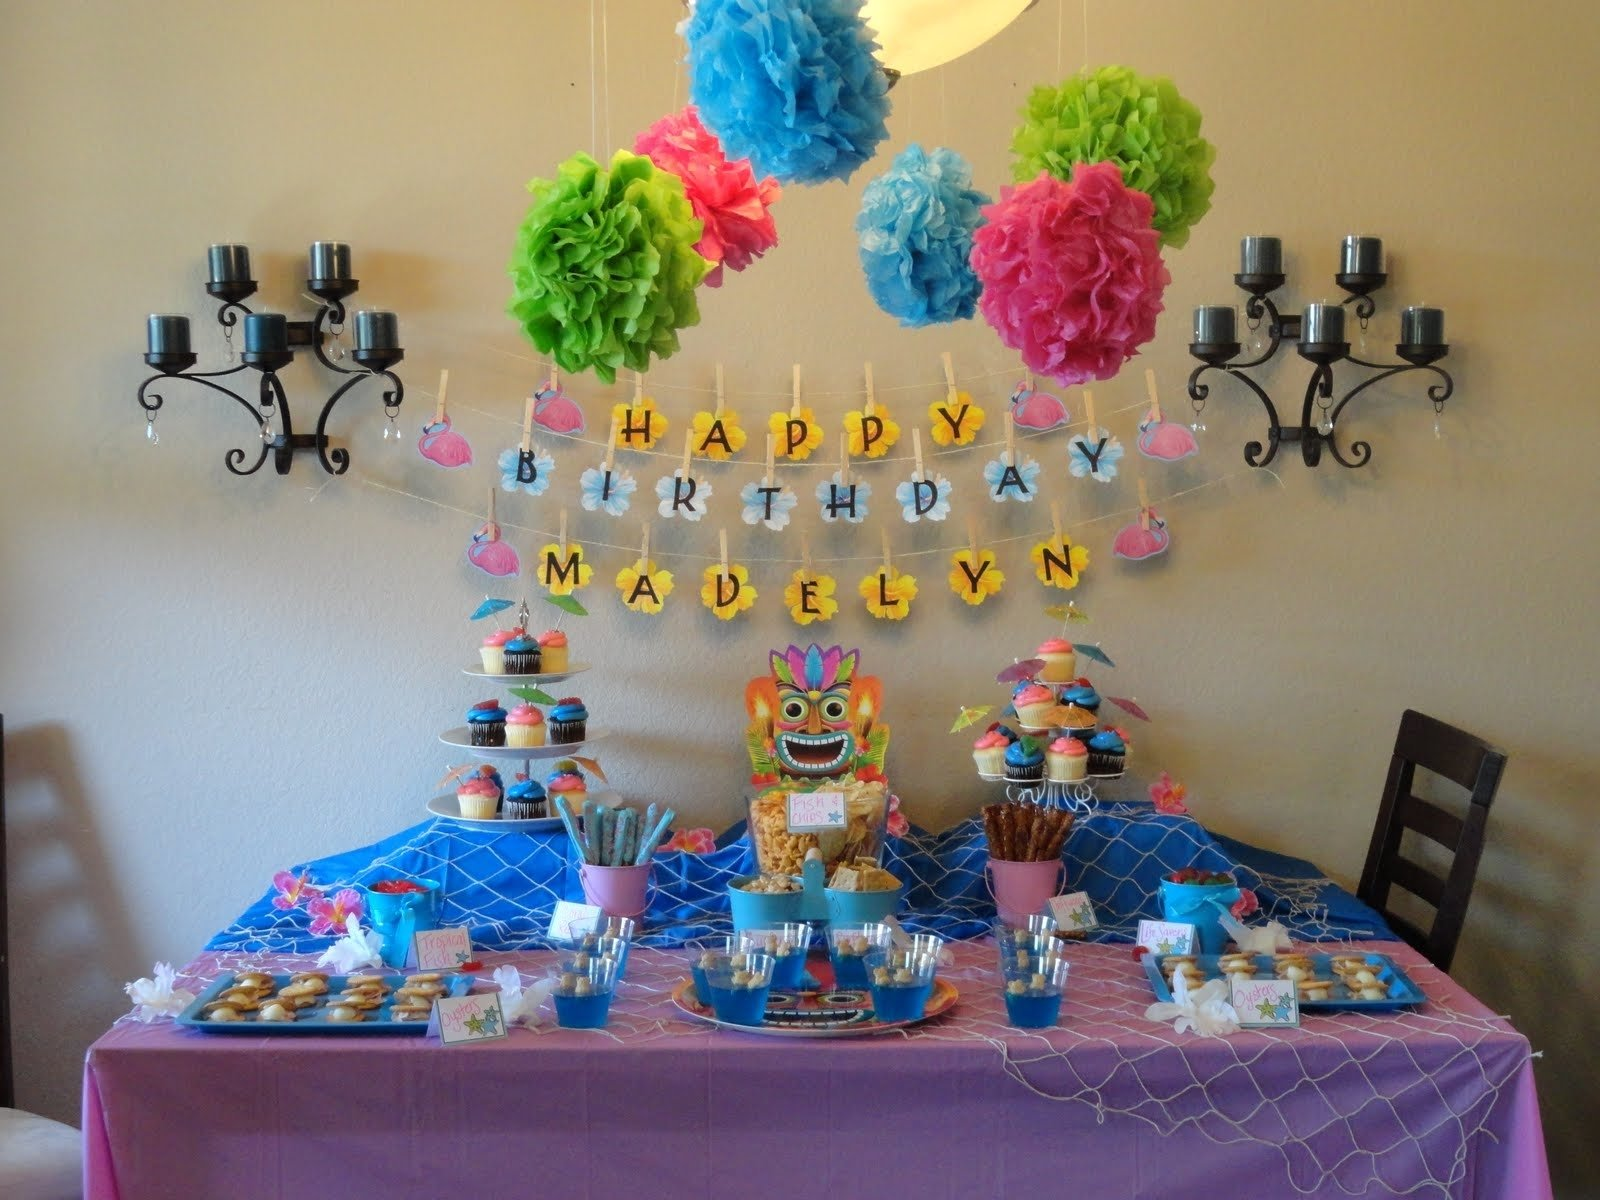 10 Nice Birthday Ideas For 4 Year Old Boy themes birthday 2 and 4 year old birthday party ideas as well as 2 2021